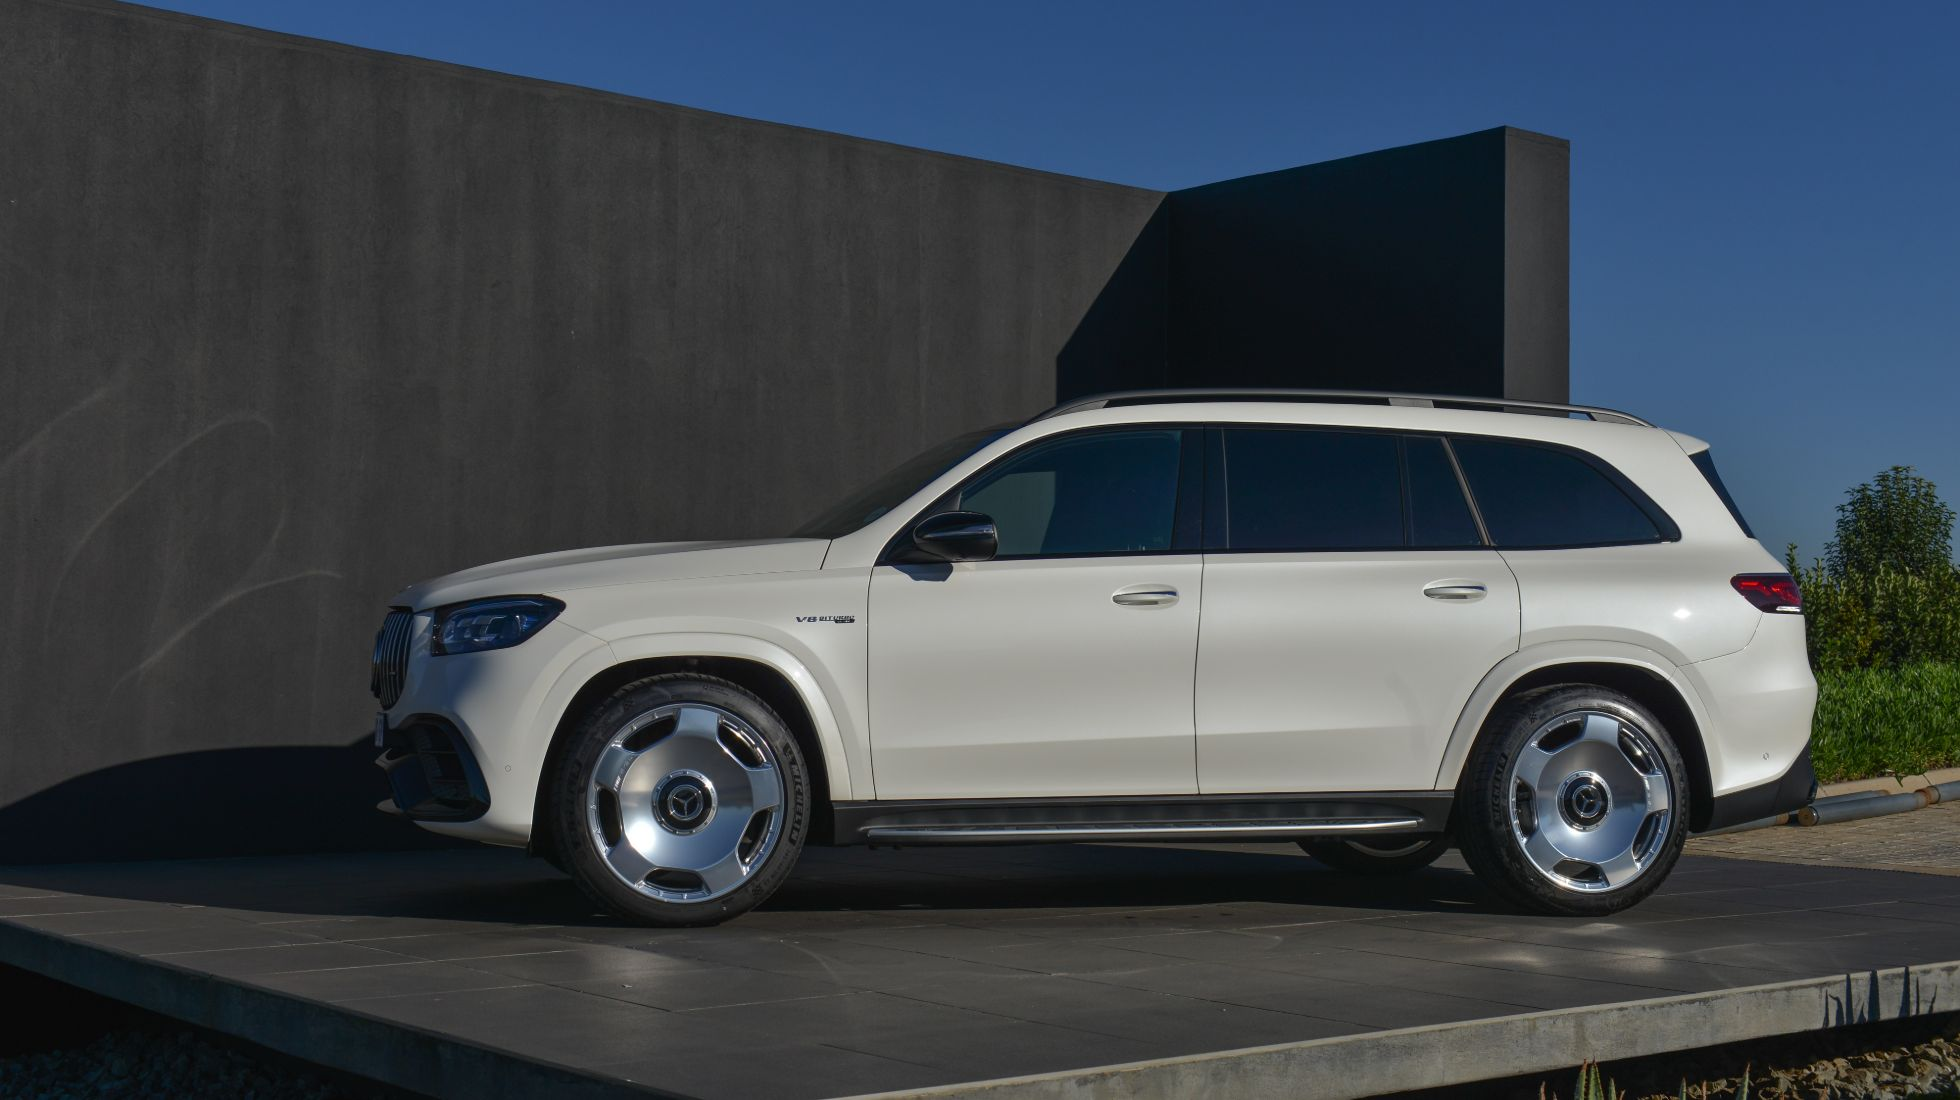 FIRST DRIVE: Mercedes-AMG SUVs launched in Mzansi